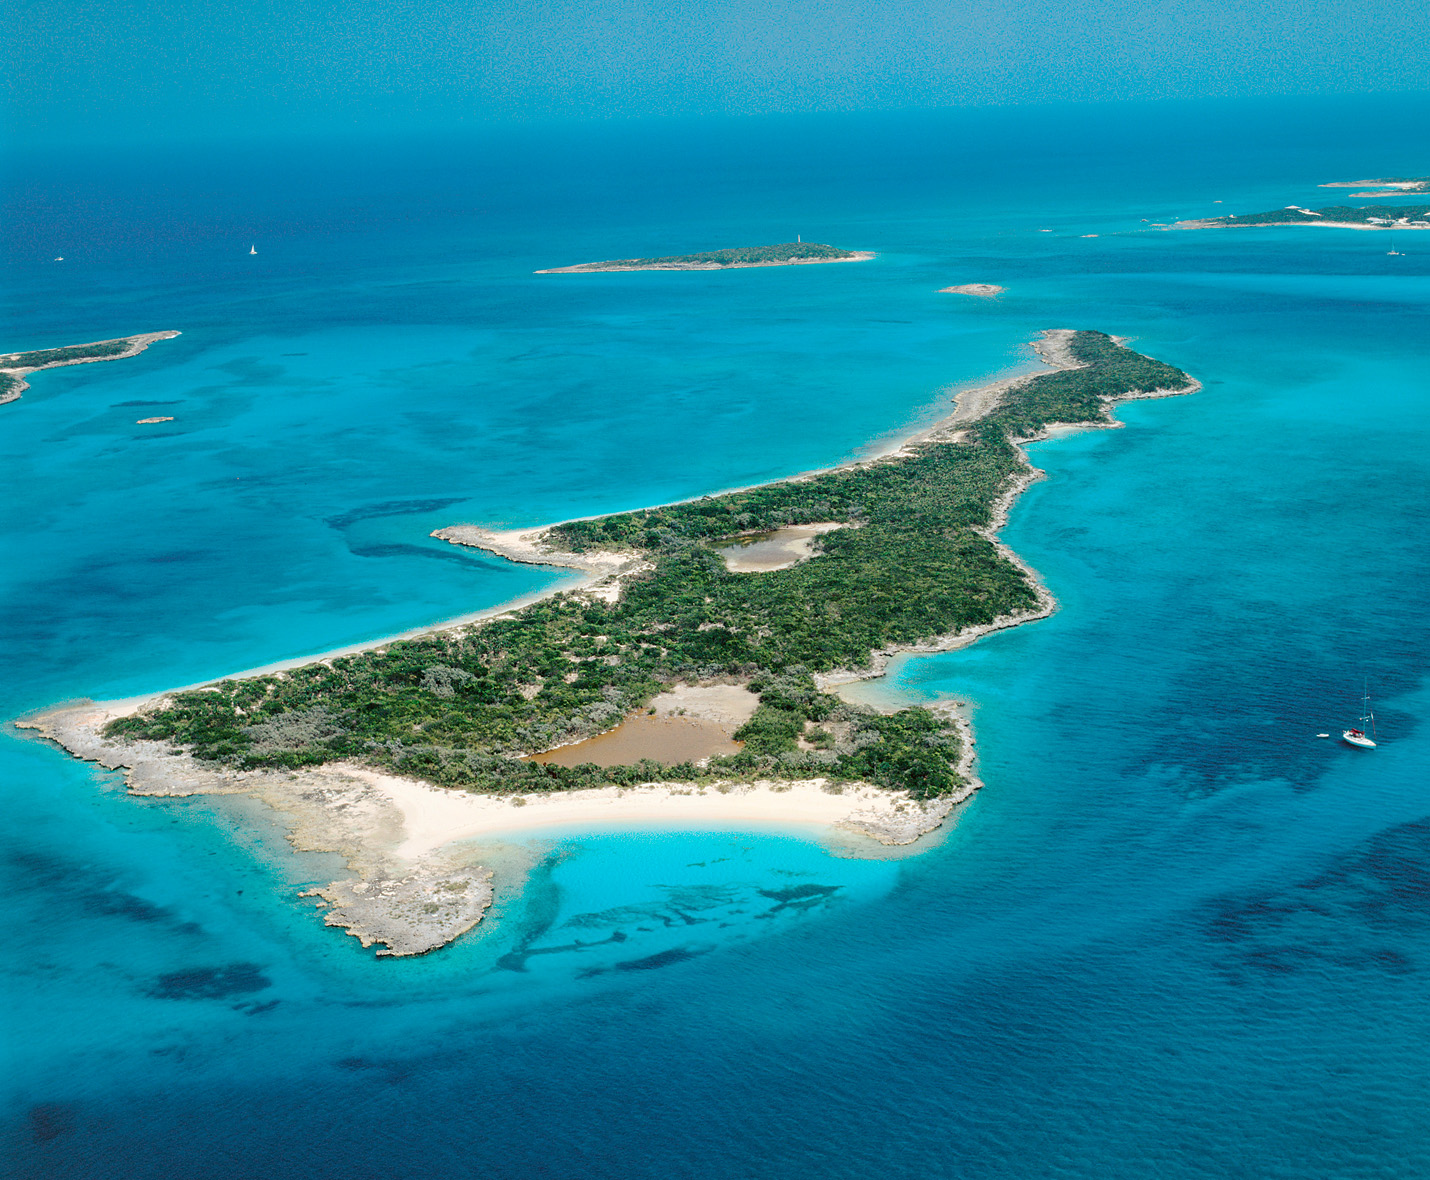 Leaf Cay 171 Private Island News Private Islands For Sale And For Rent Private Island Resort